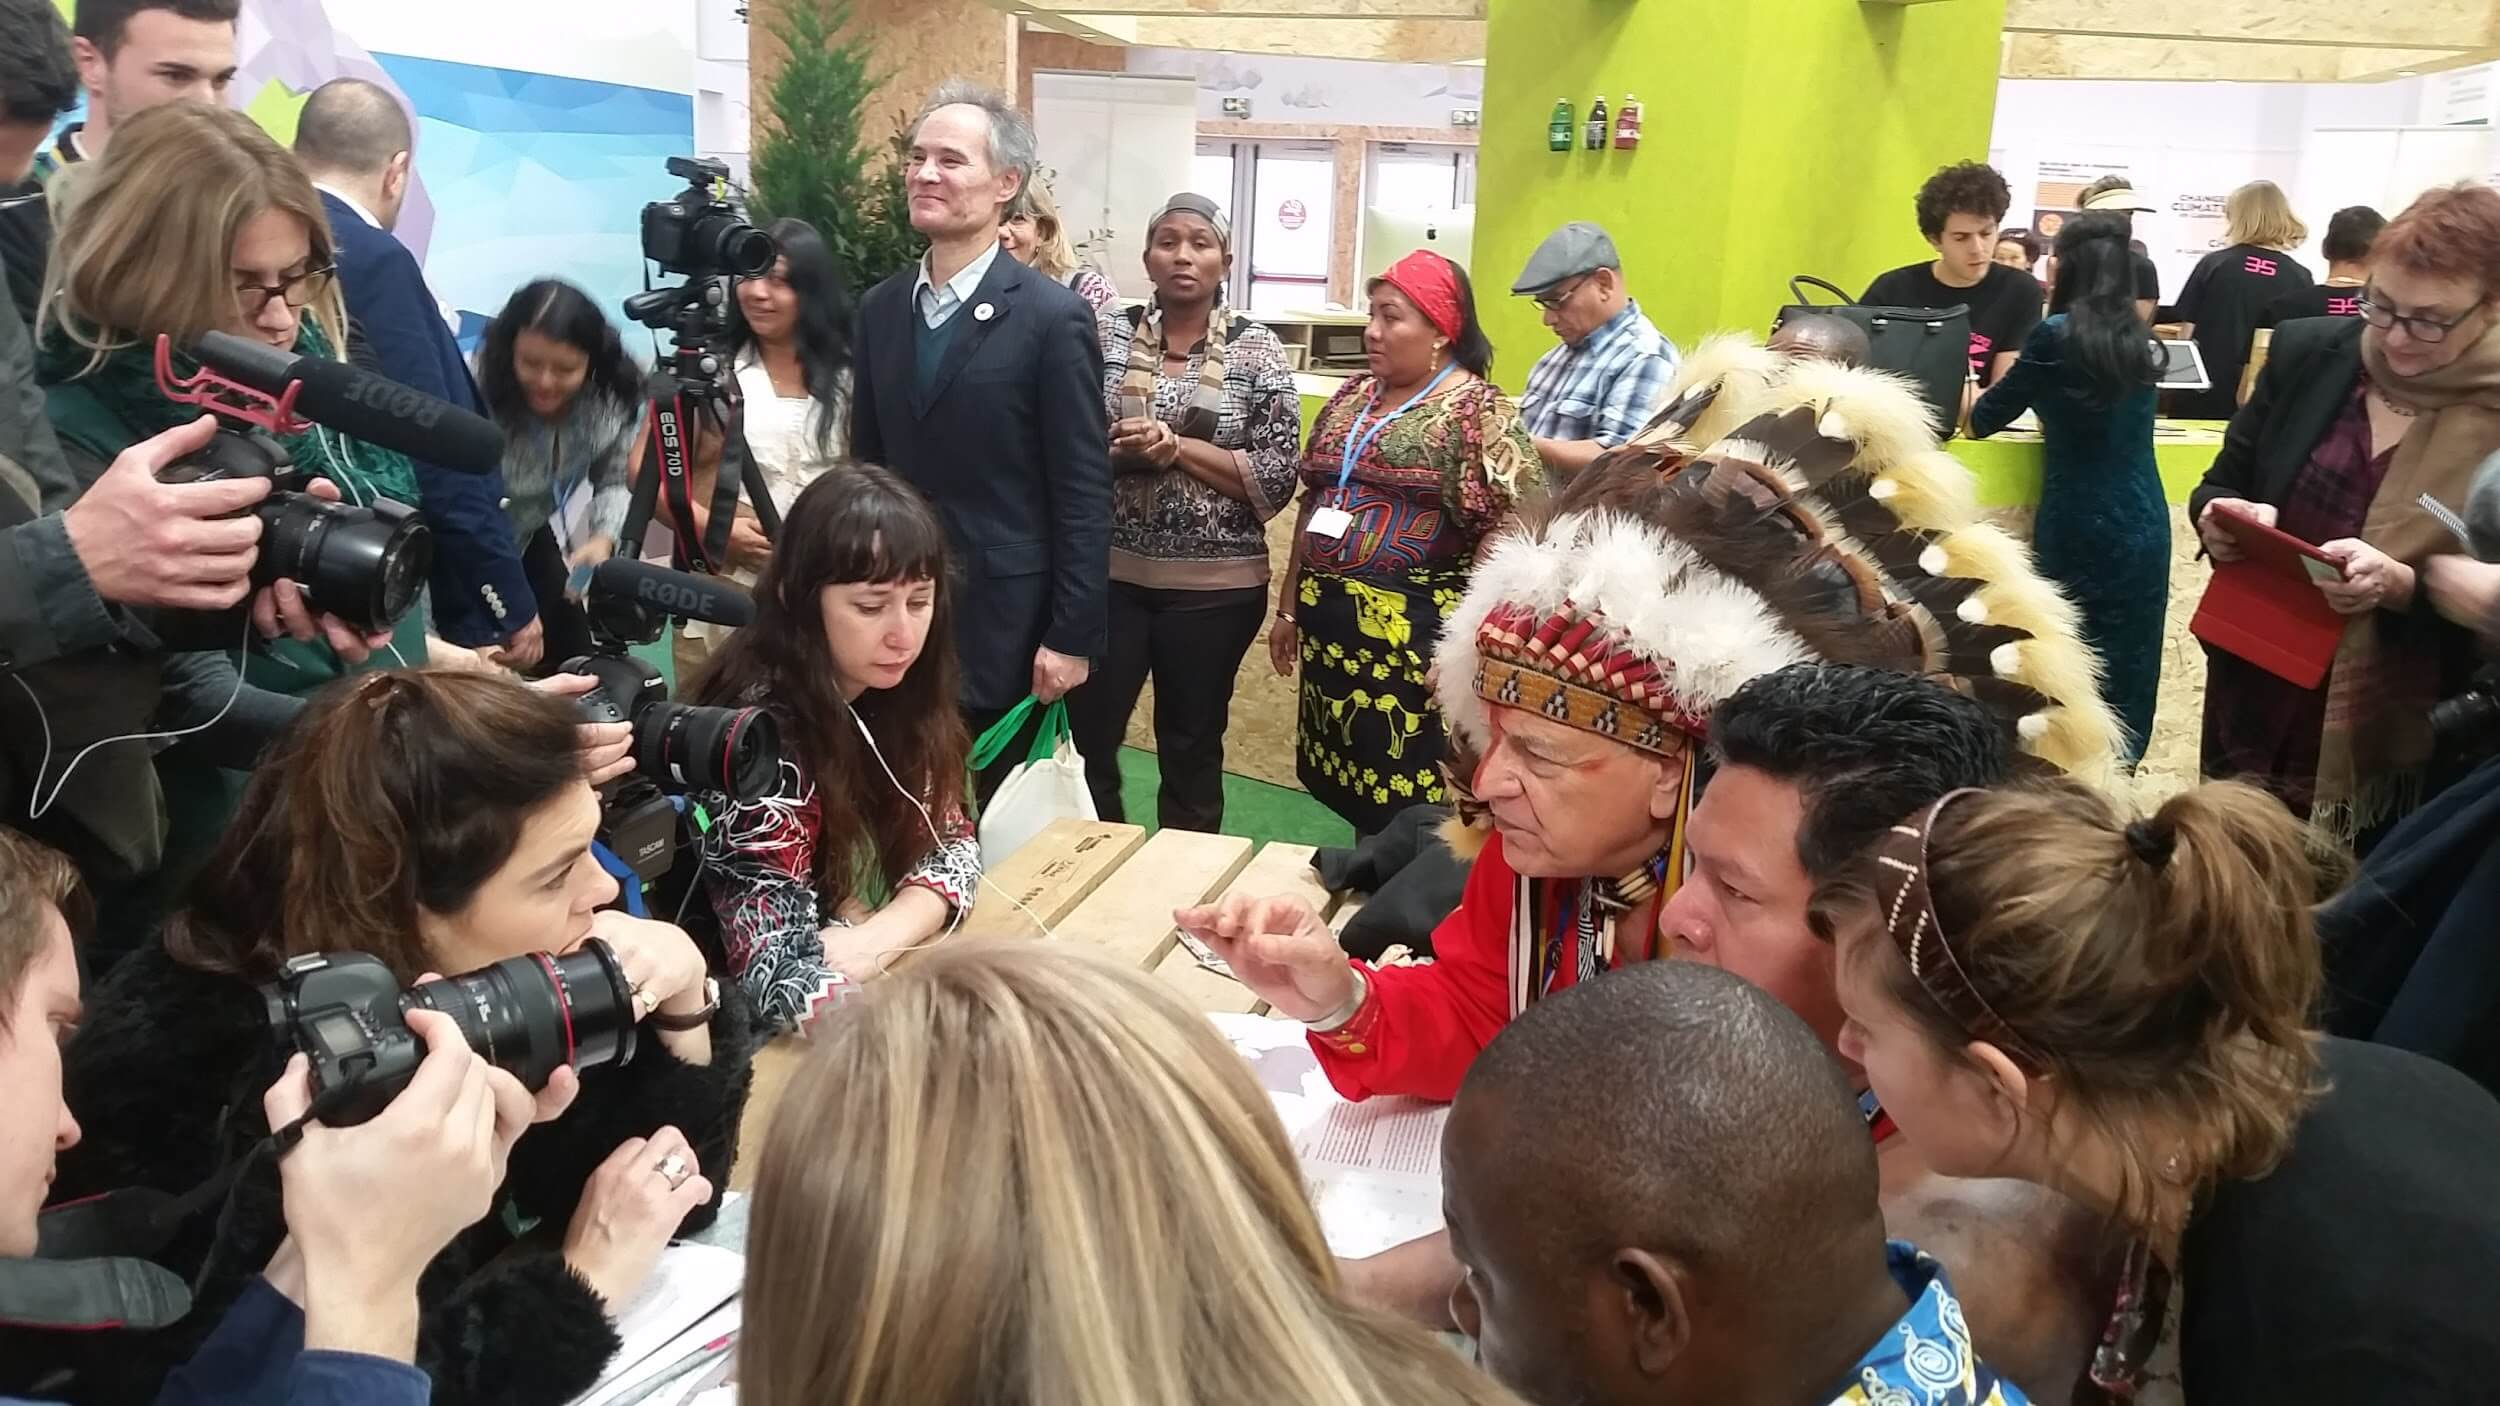 Indigenous leaders present research on land rights at a Green Zone press conference